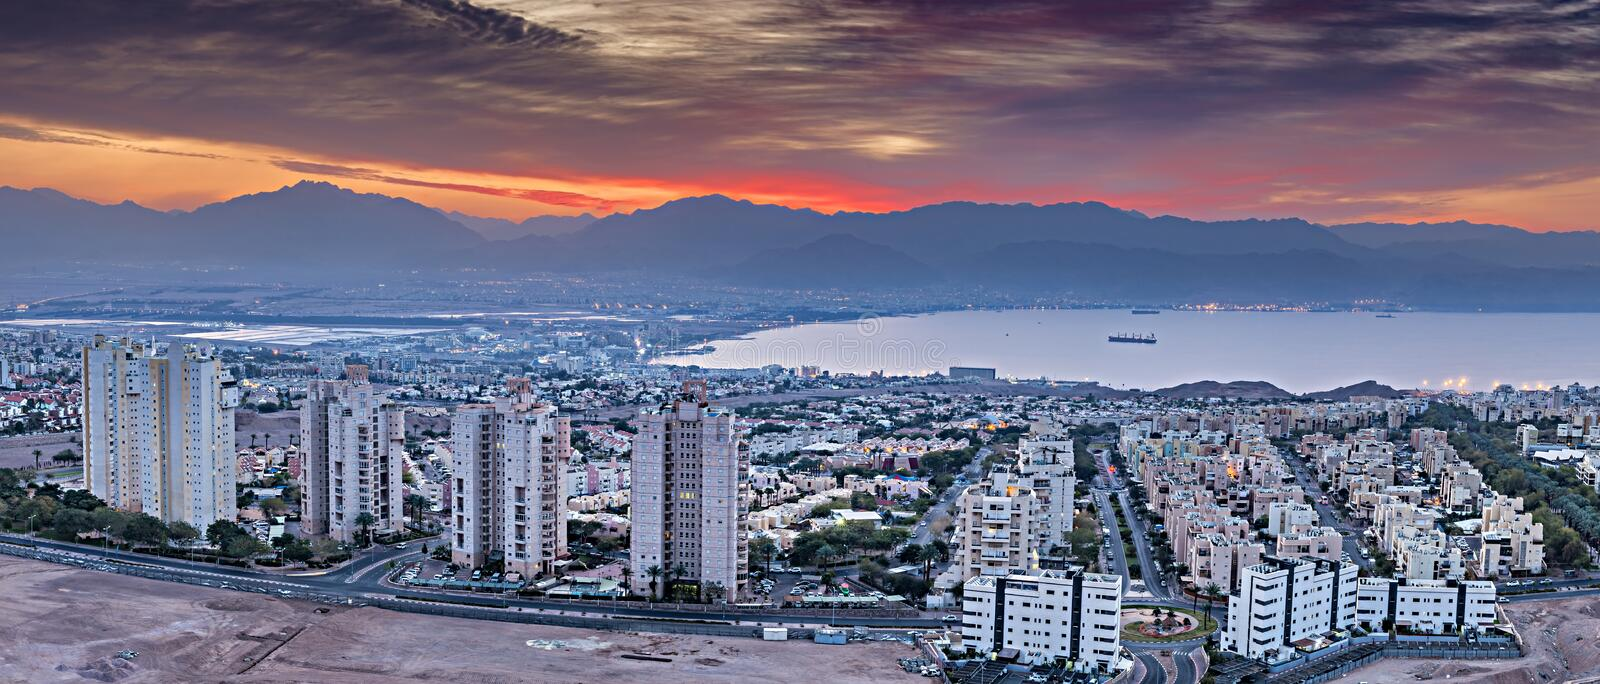 Colorful aerial scenic view on Eilat Israel and Aqaba Jordan cities royalty free stock images